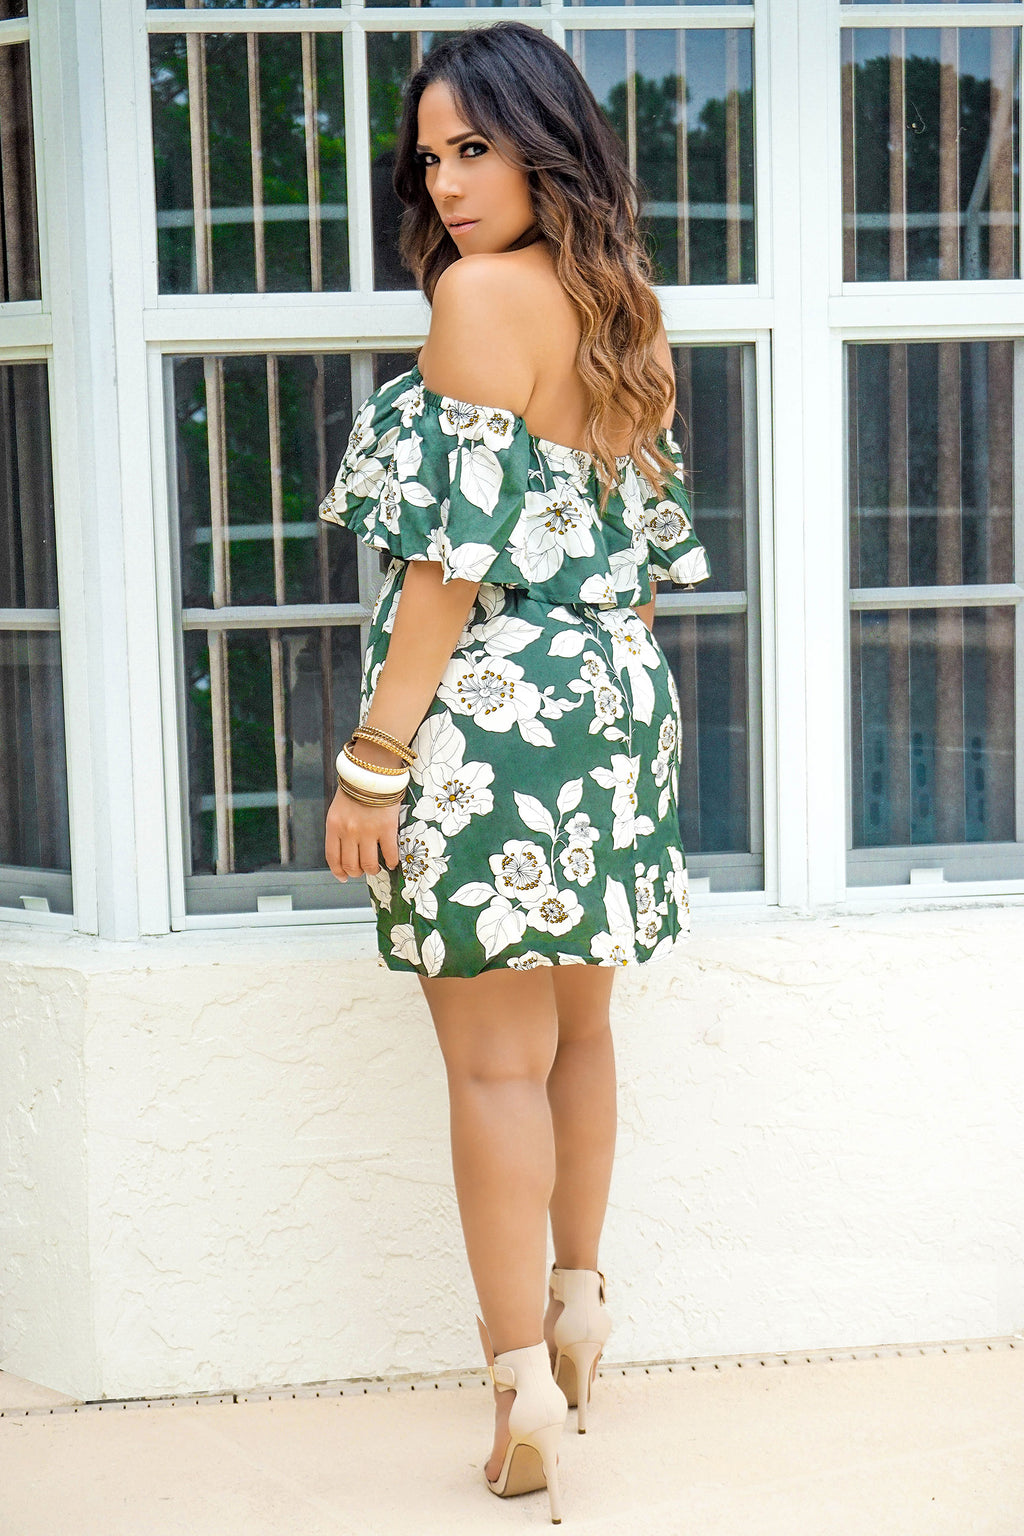 JOSIE OLIVE IVORY OFF SHOULDER FLORAL DRESS